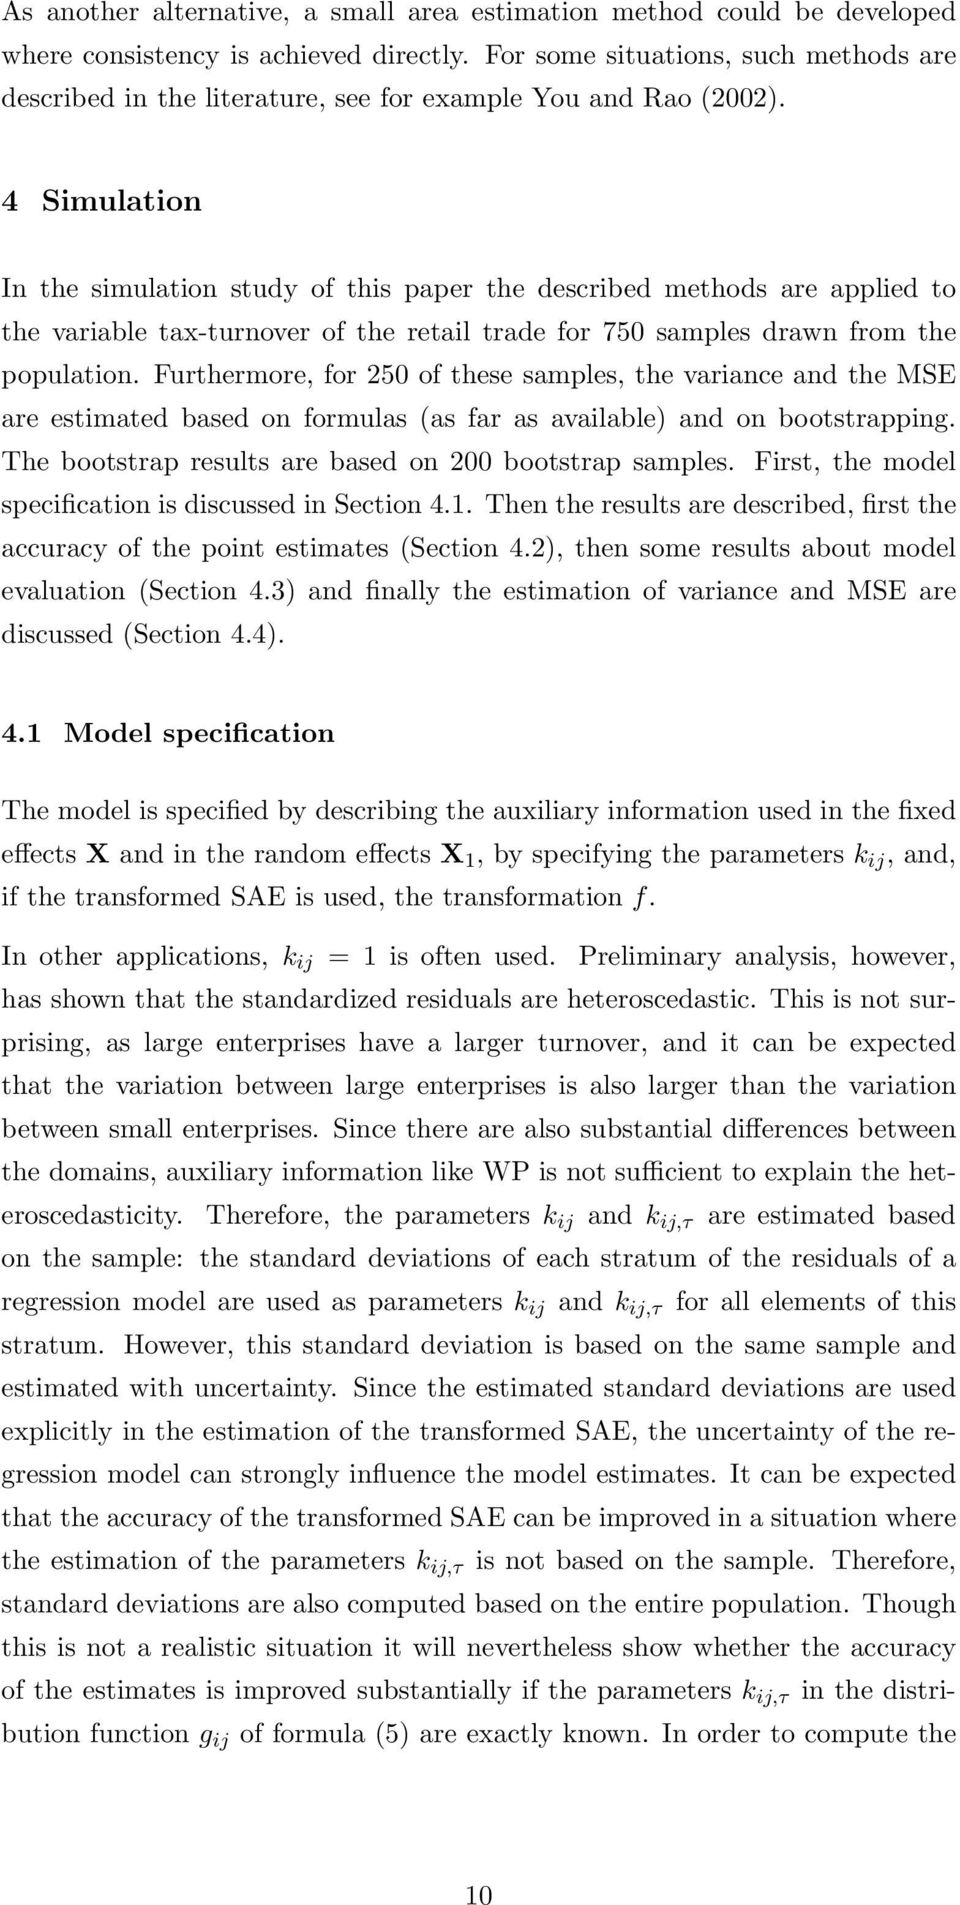 4 Simulation In the simulation study of this paper the described methods are applied to the variable tax-turnover of the retail trade for 750 samples drawn from the population.